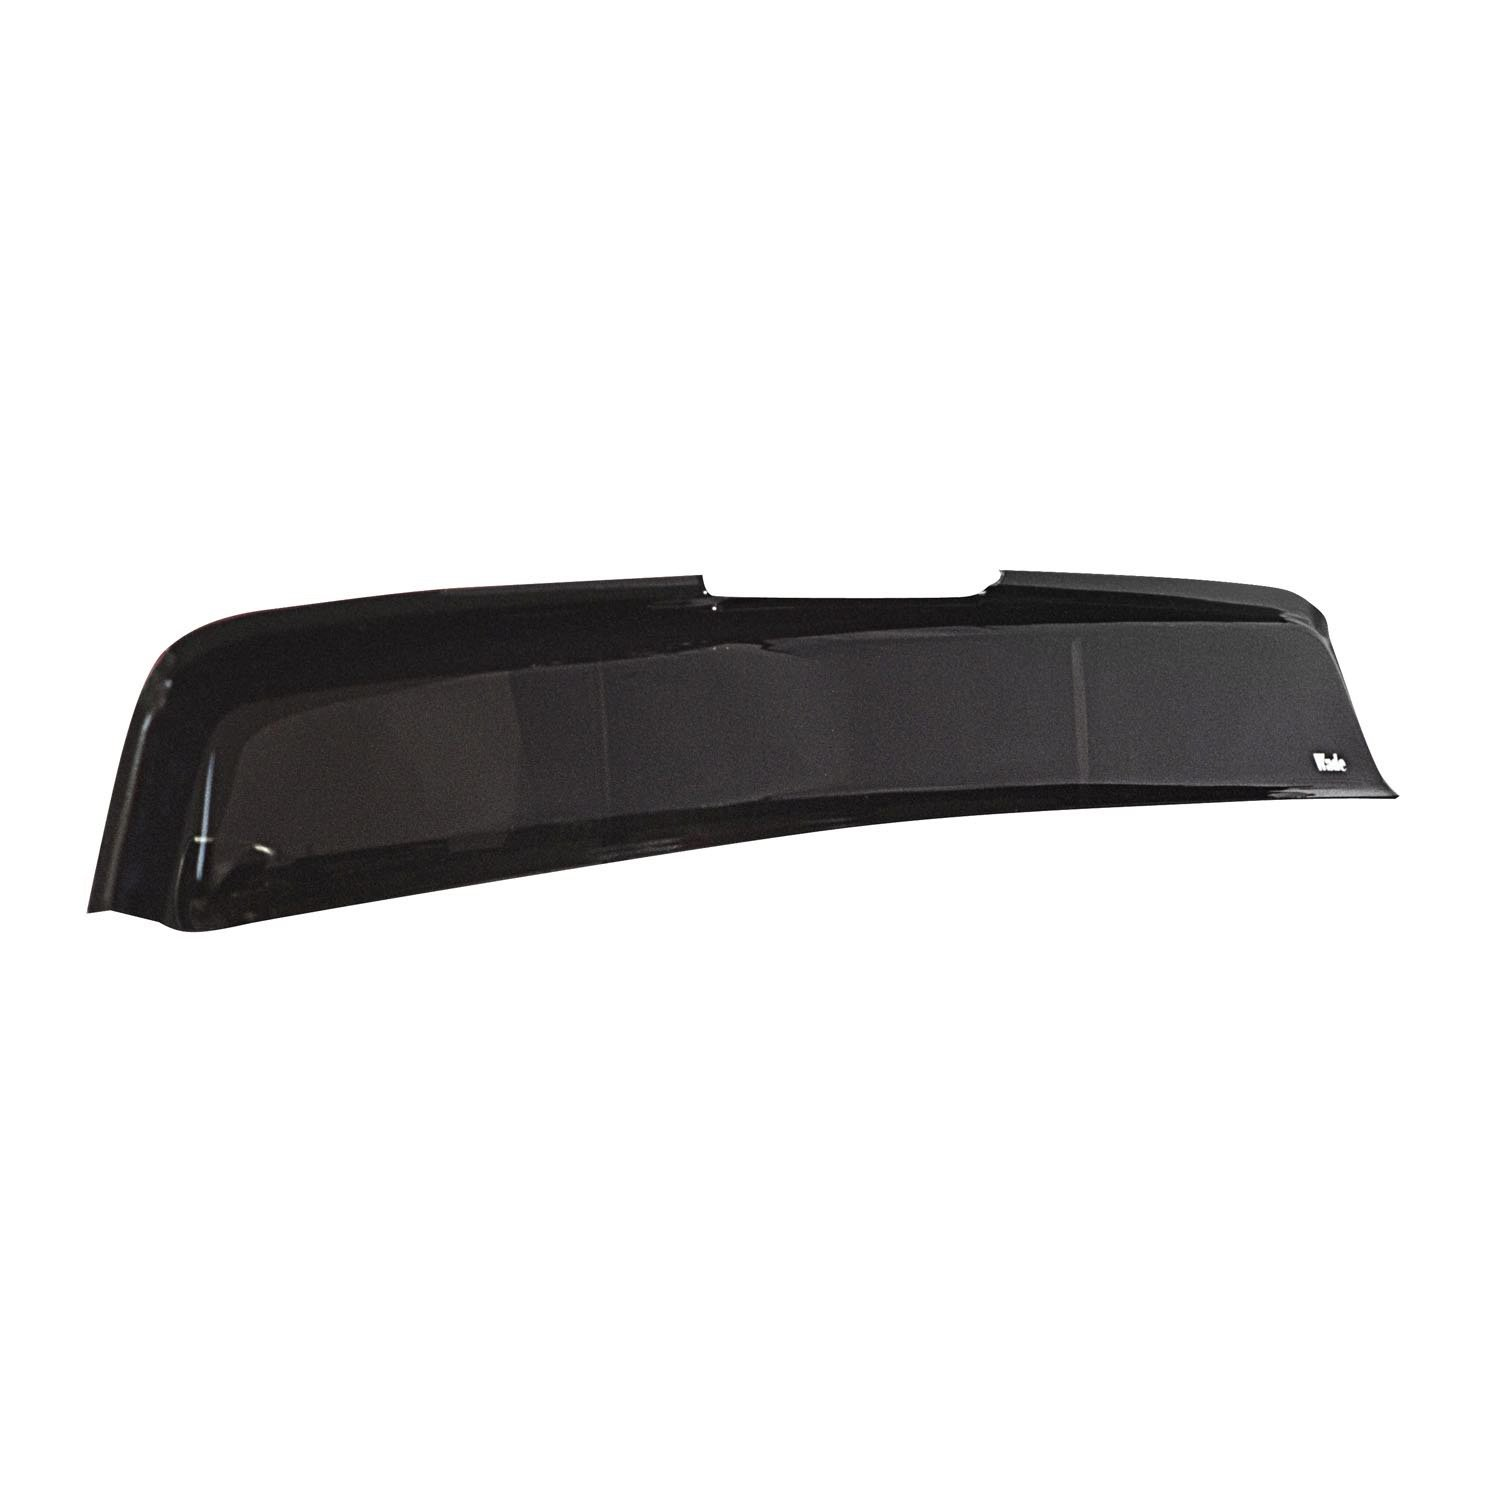 Wade 72-68102 Smoke Tint Rear Window Cab Guard